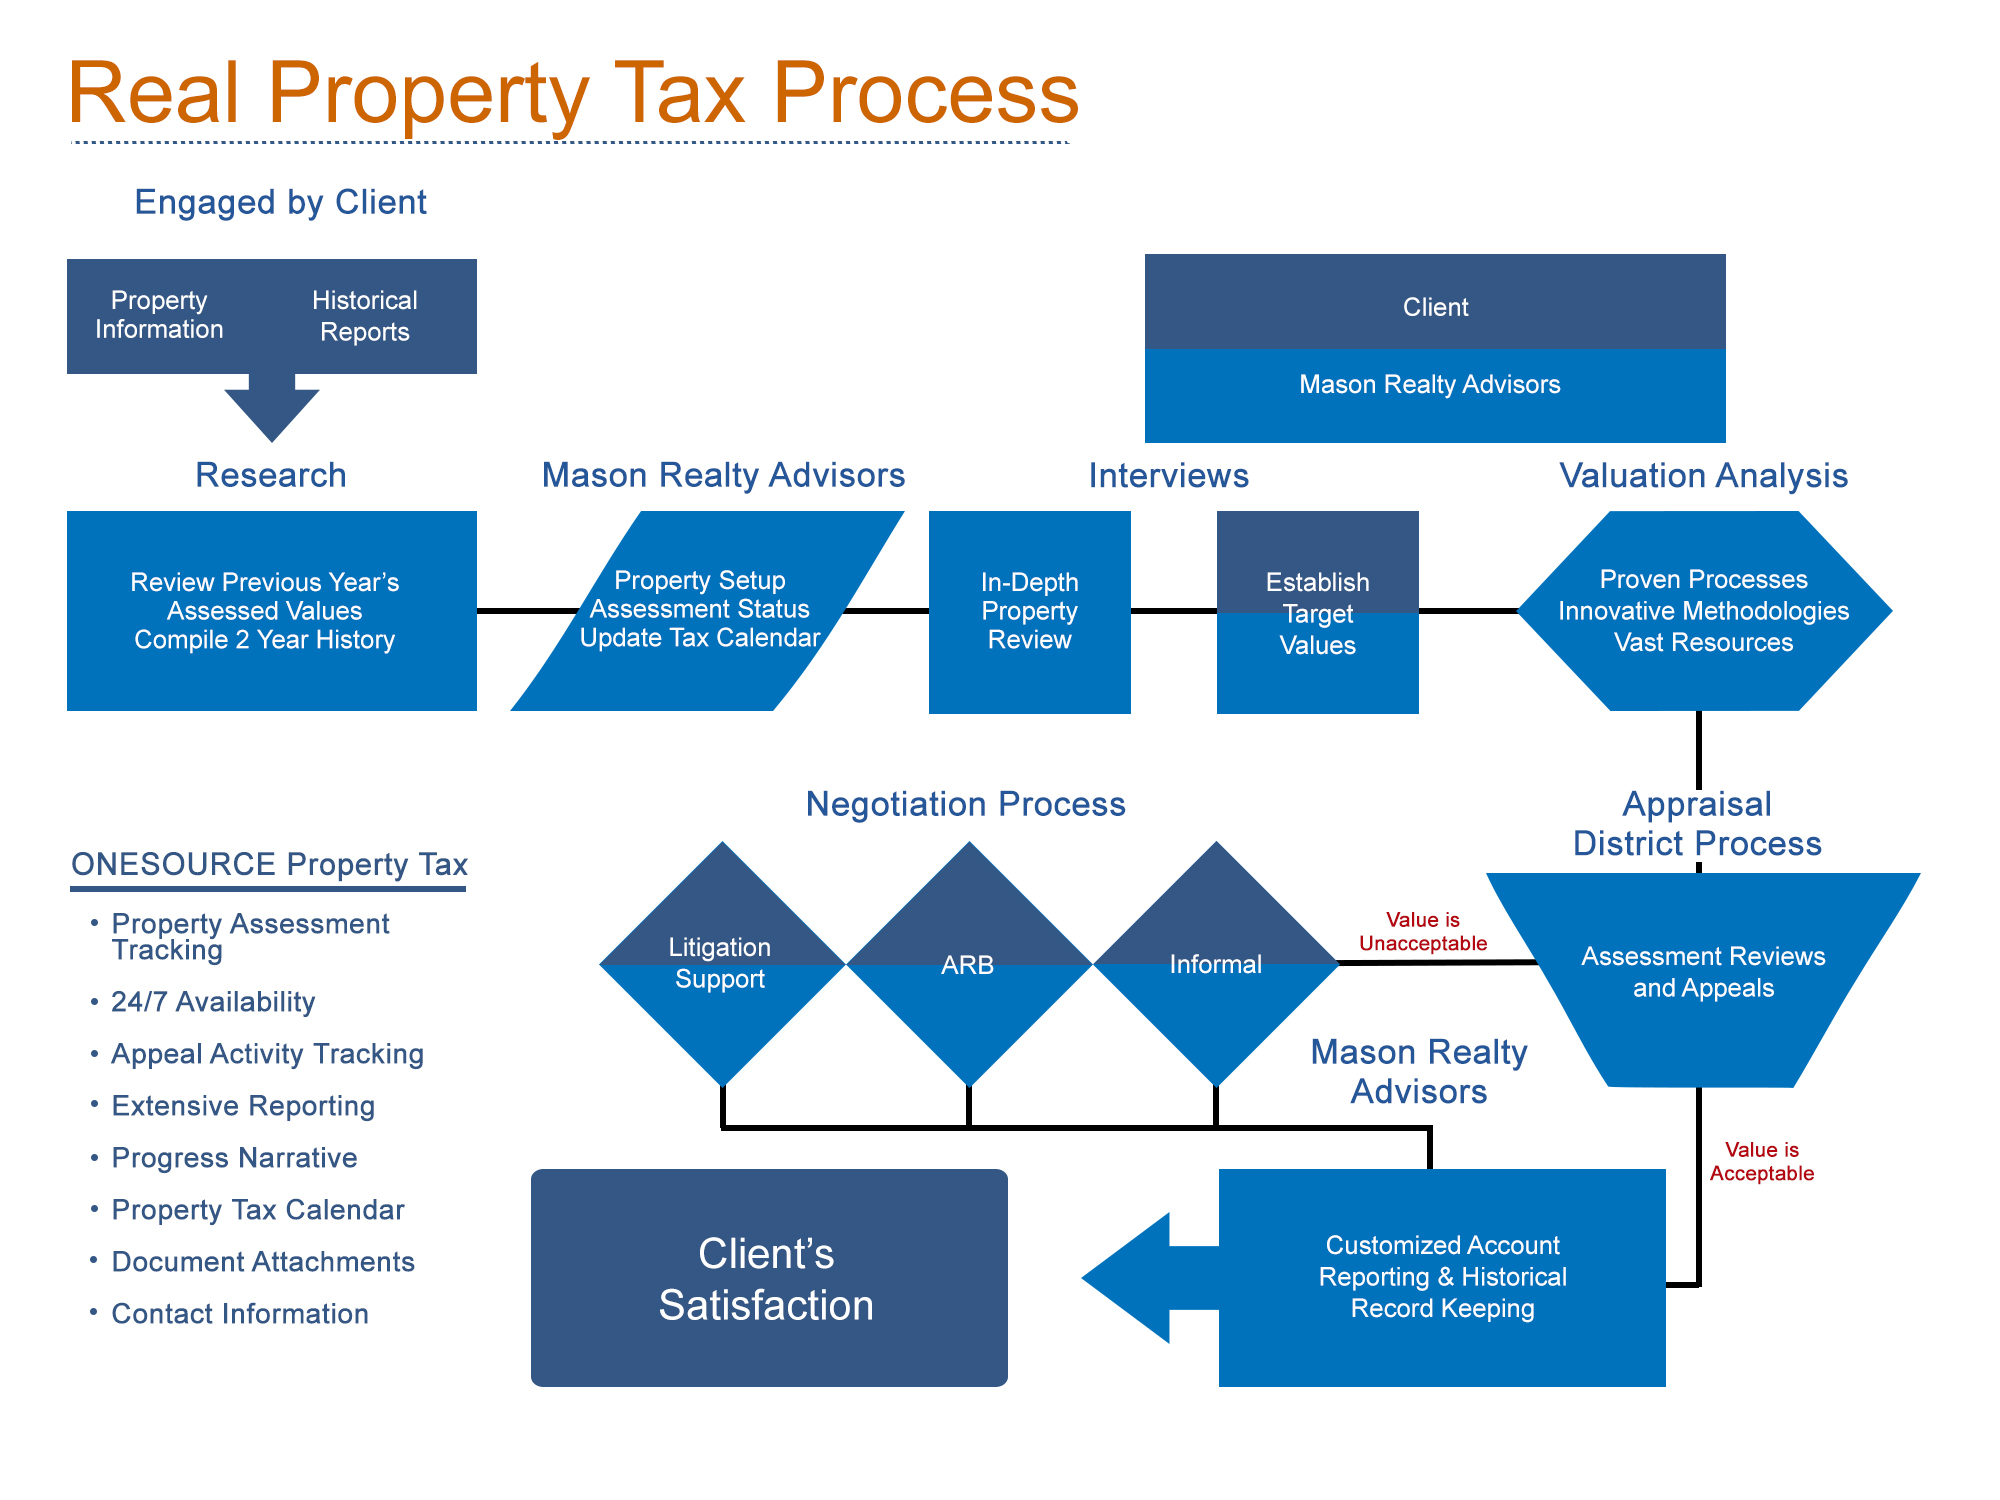 tarrant county tax assessor property tax